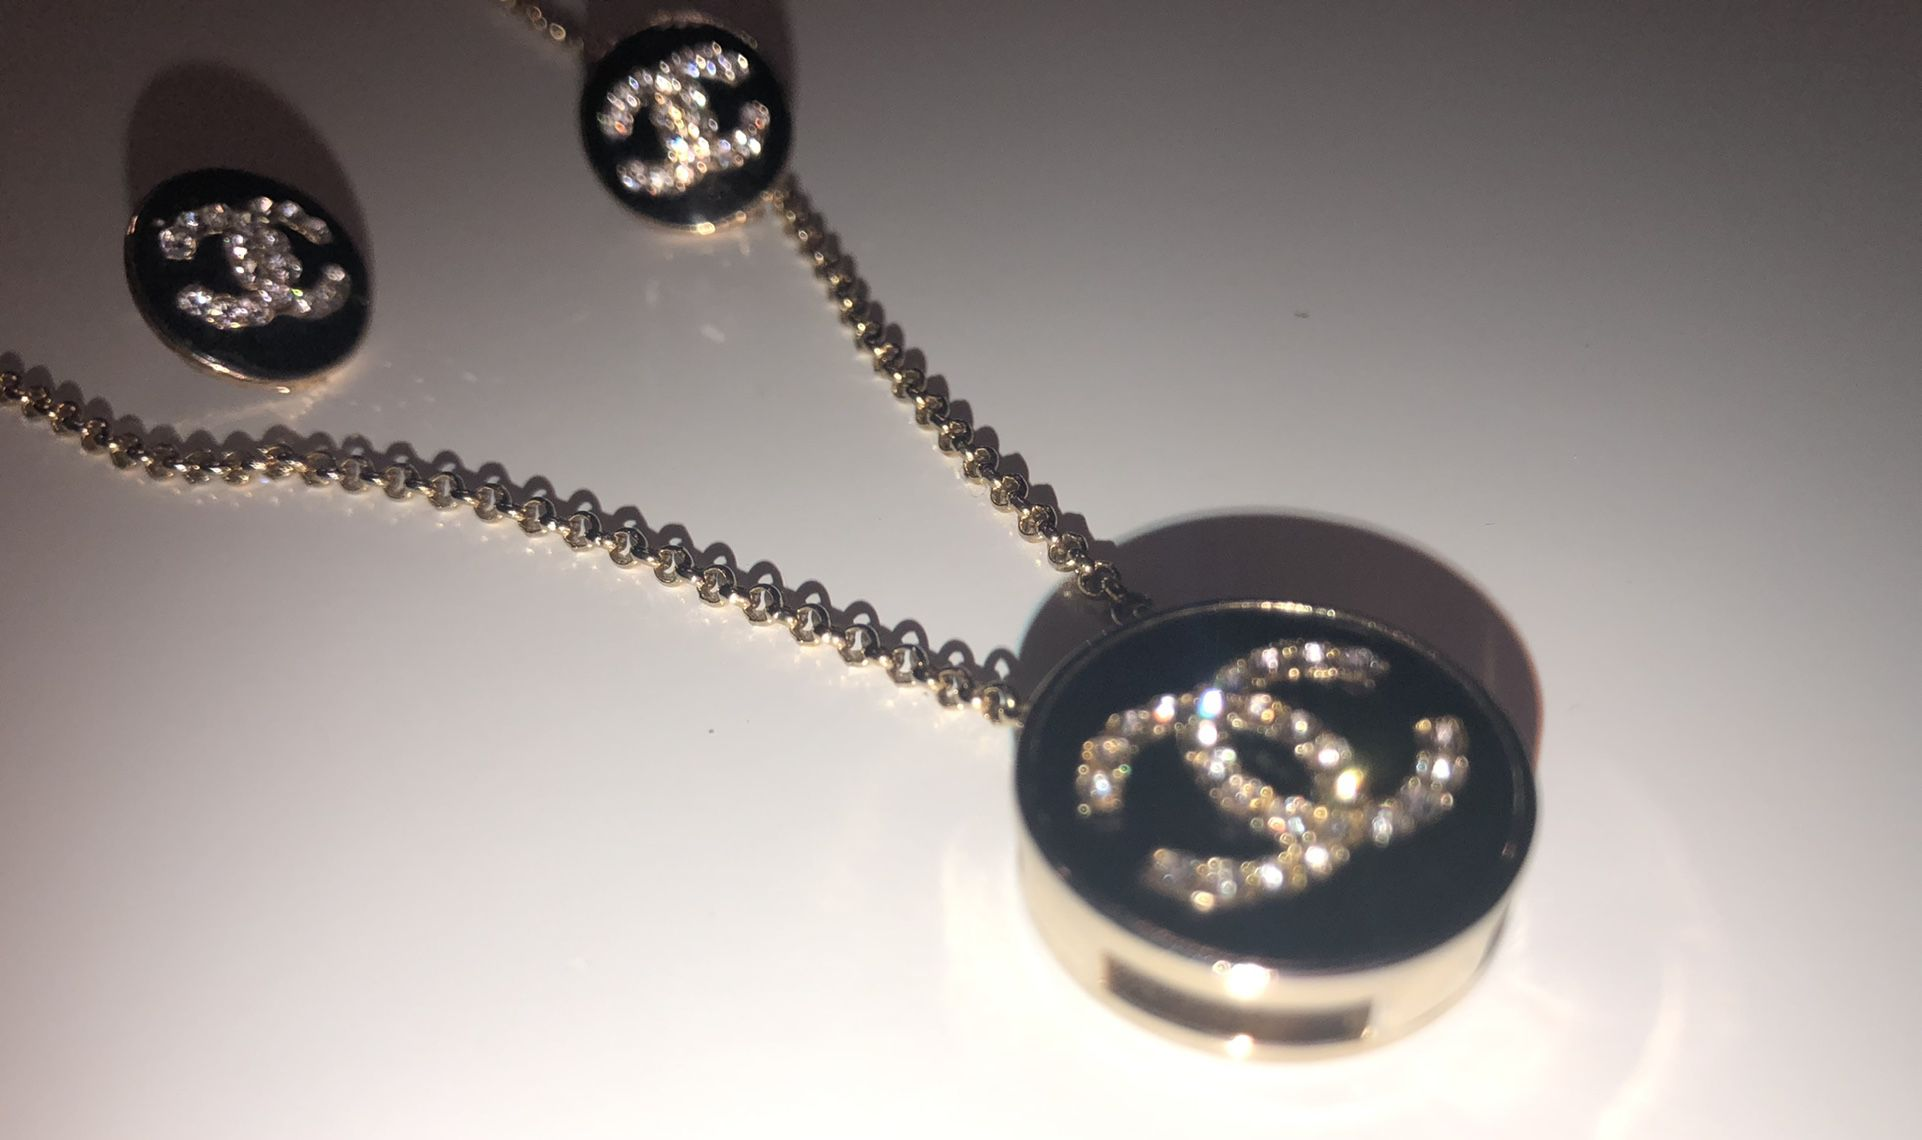 Stainless Steel Necklace & Earings 2pc Set